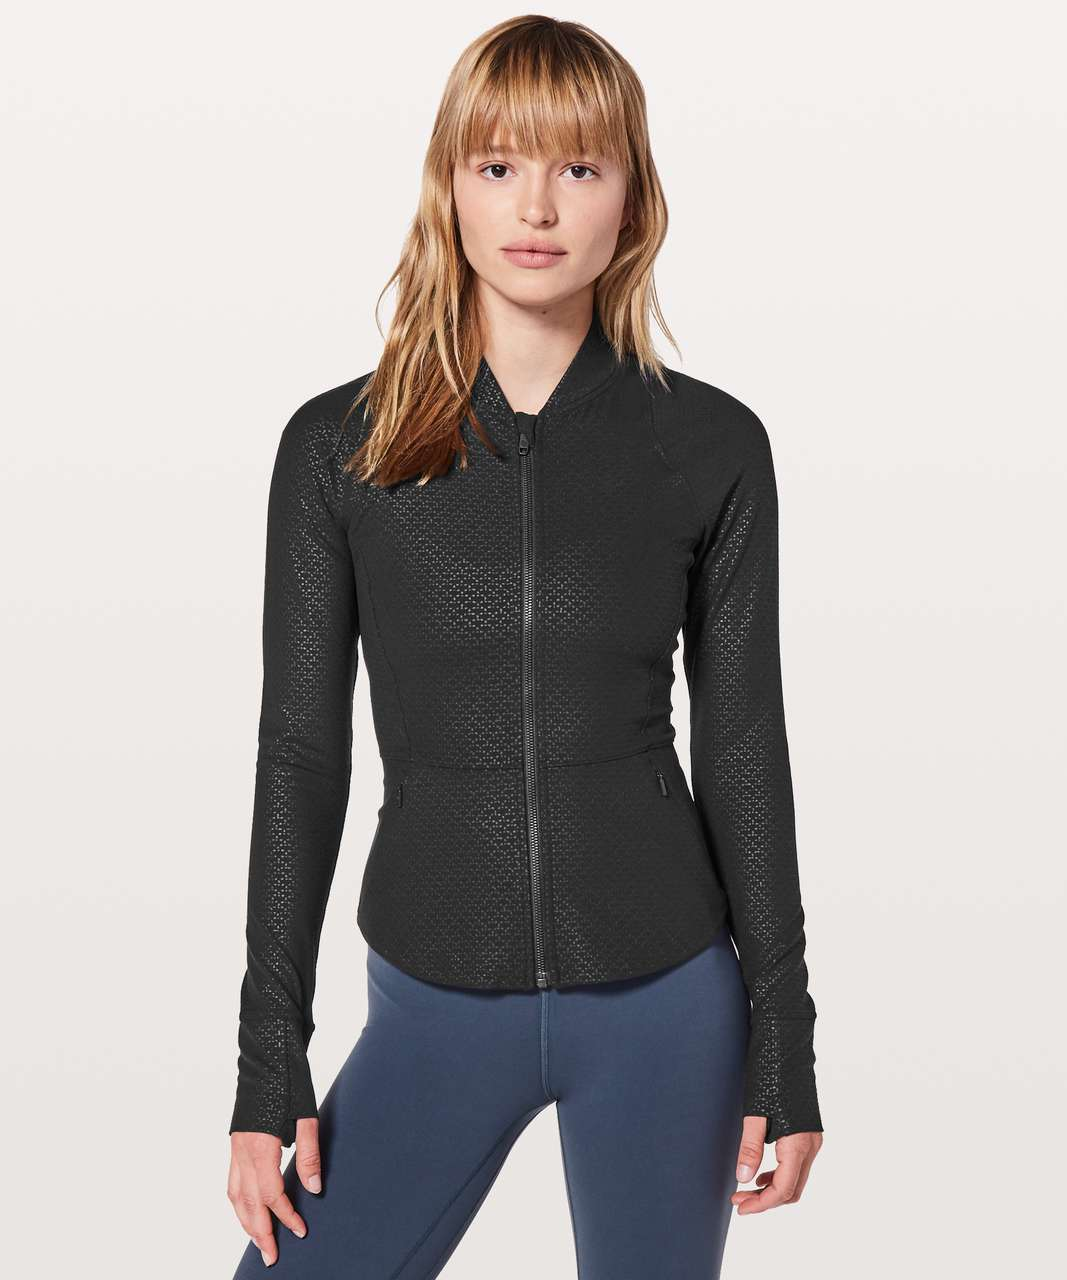 Lululemon The Ease Jacket - Monochromic Black Emboss